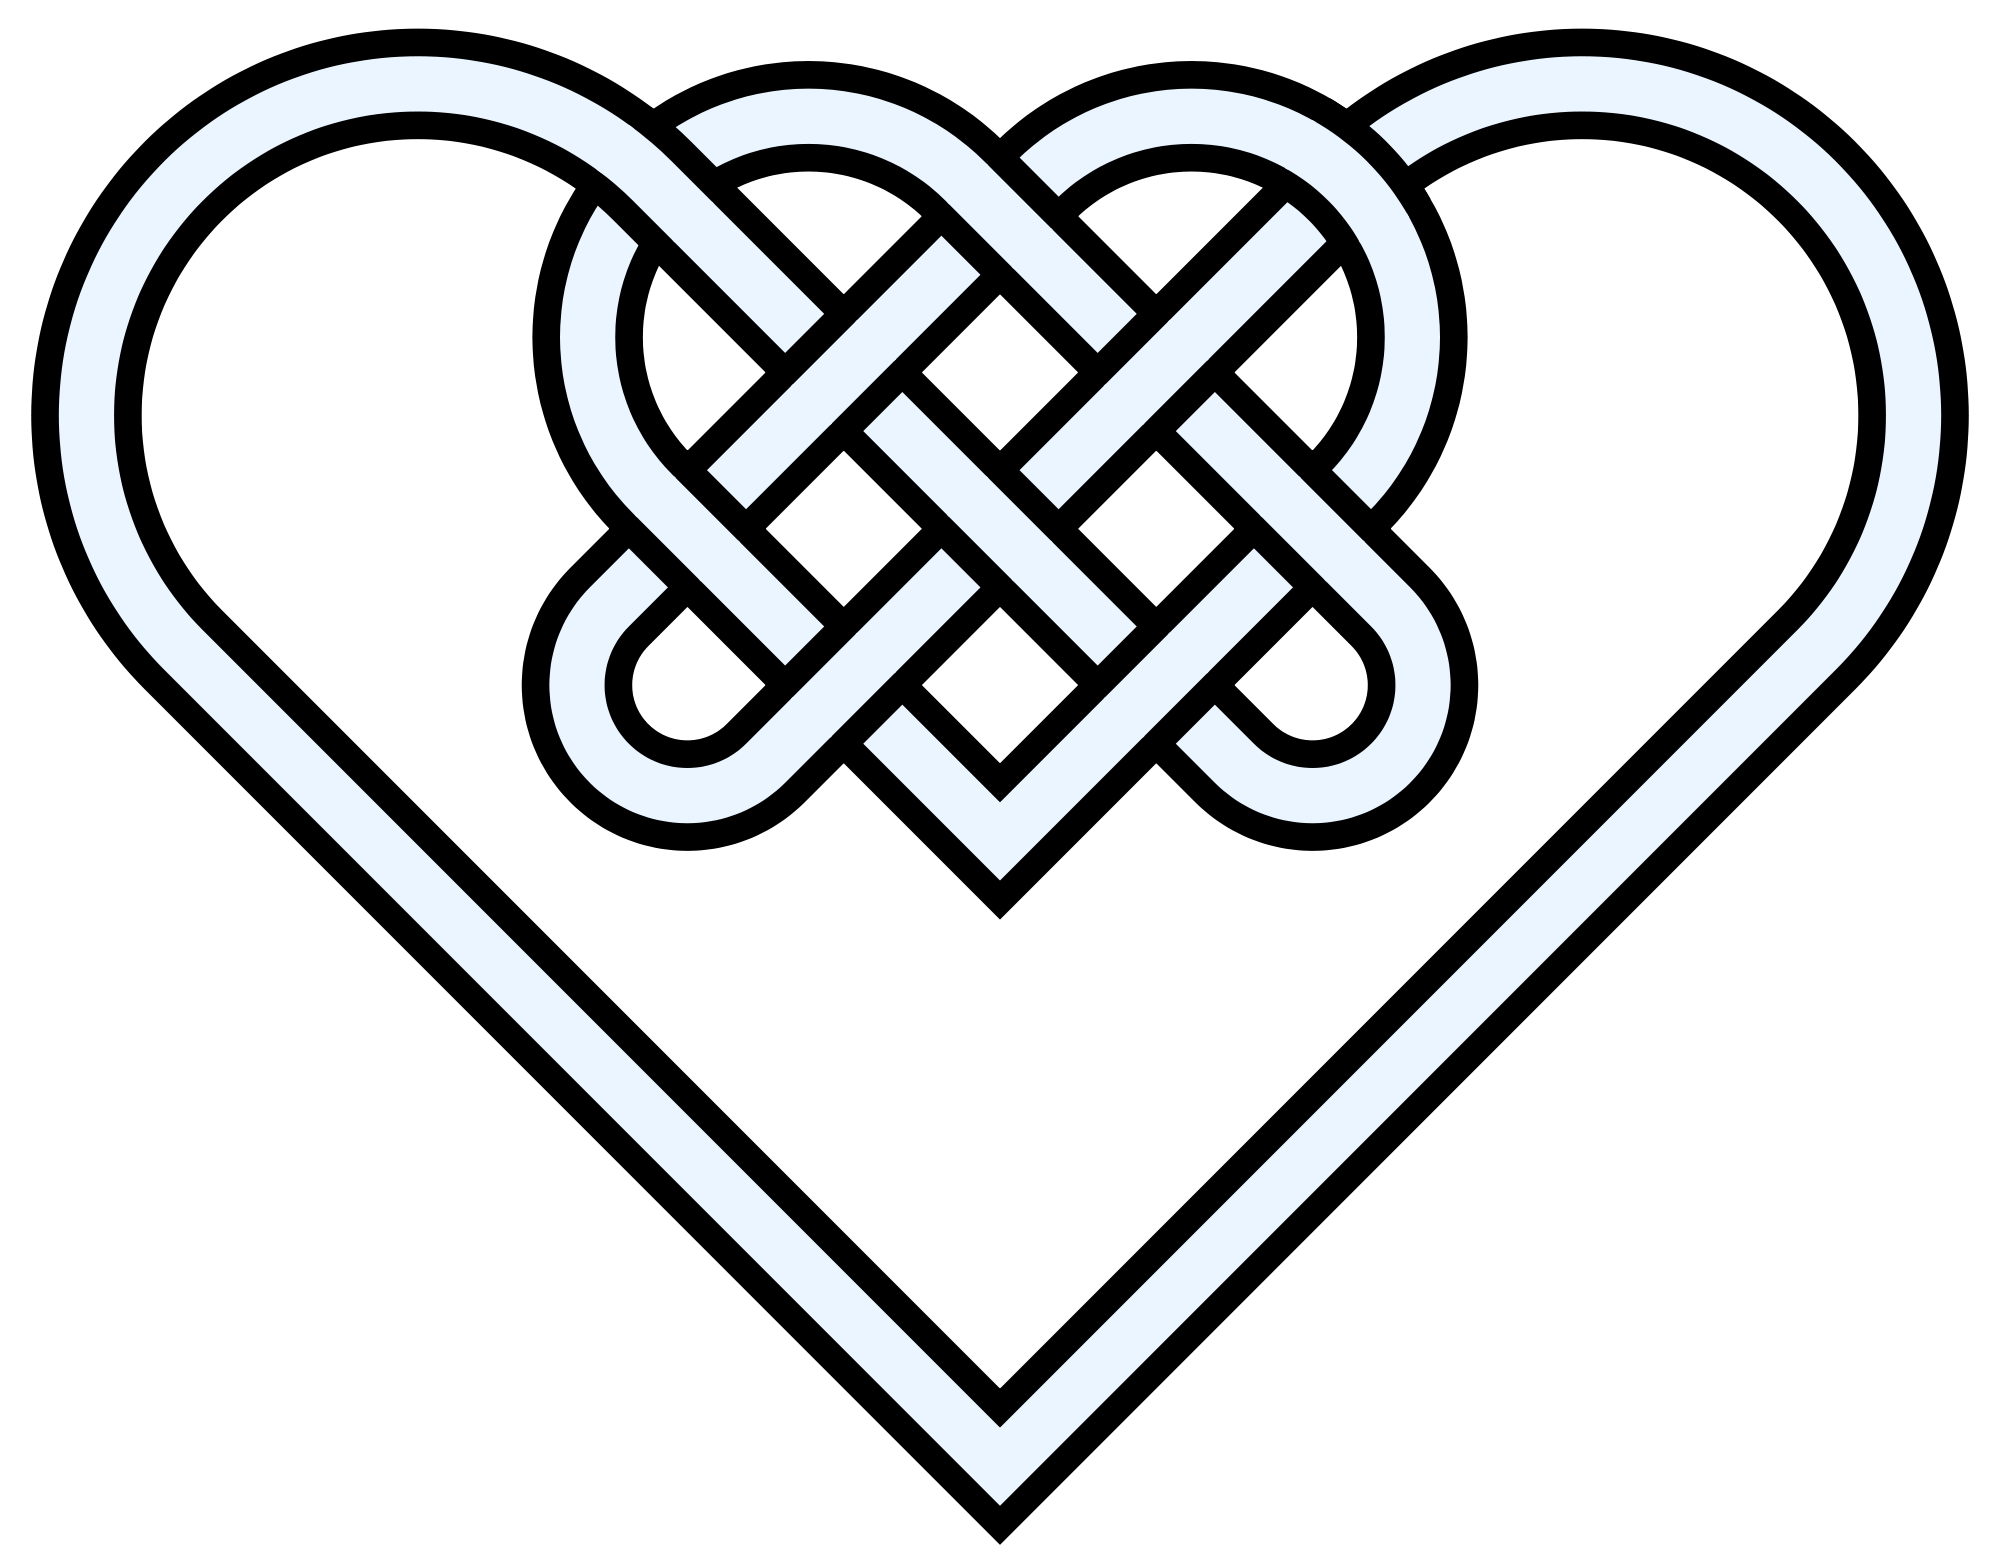 Celtic heart knot clipart vector library Love Knot Drawing at GetDrawings.com | Free for personal use Love ... vector library